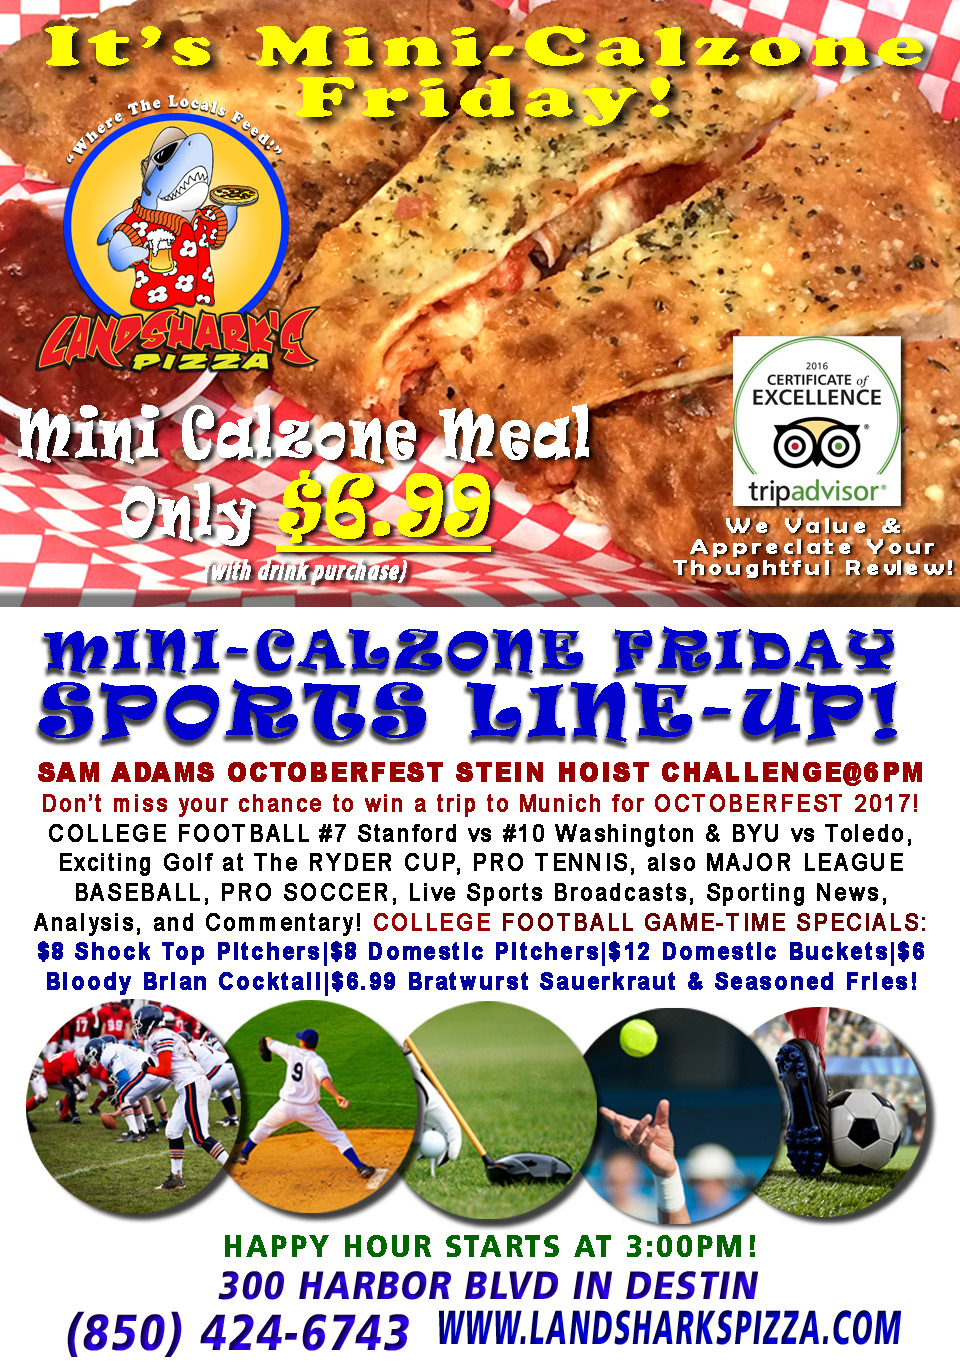 best-calzones-in-destin-fl-at-landsharks-with-college-football-09-30-16a